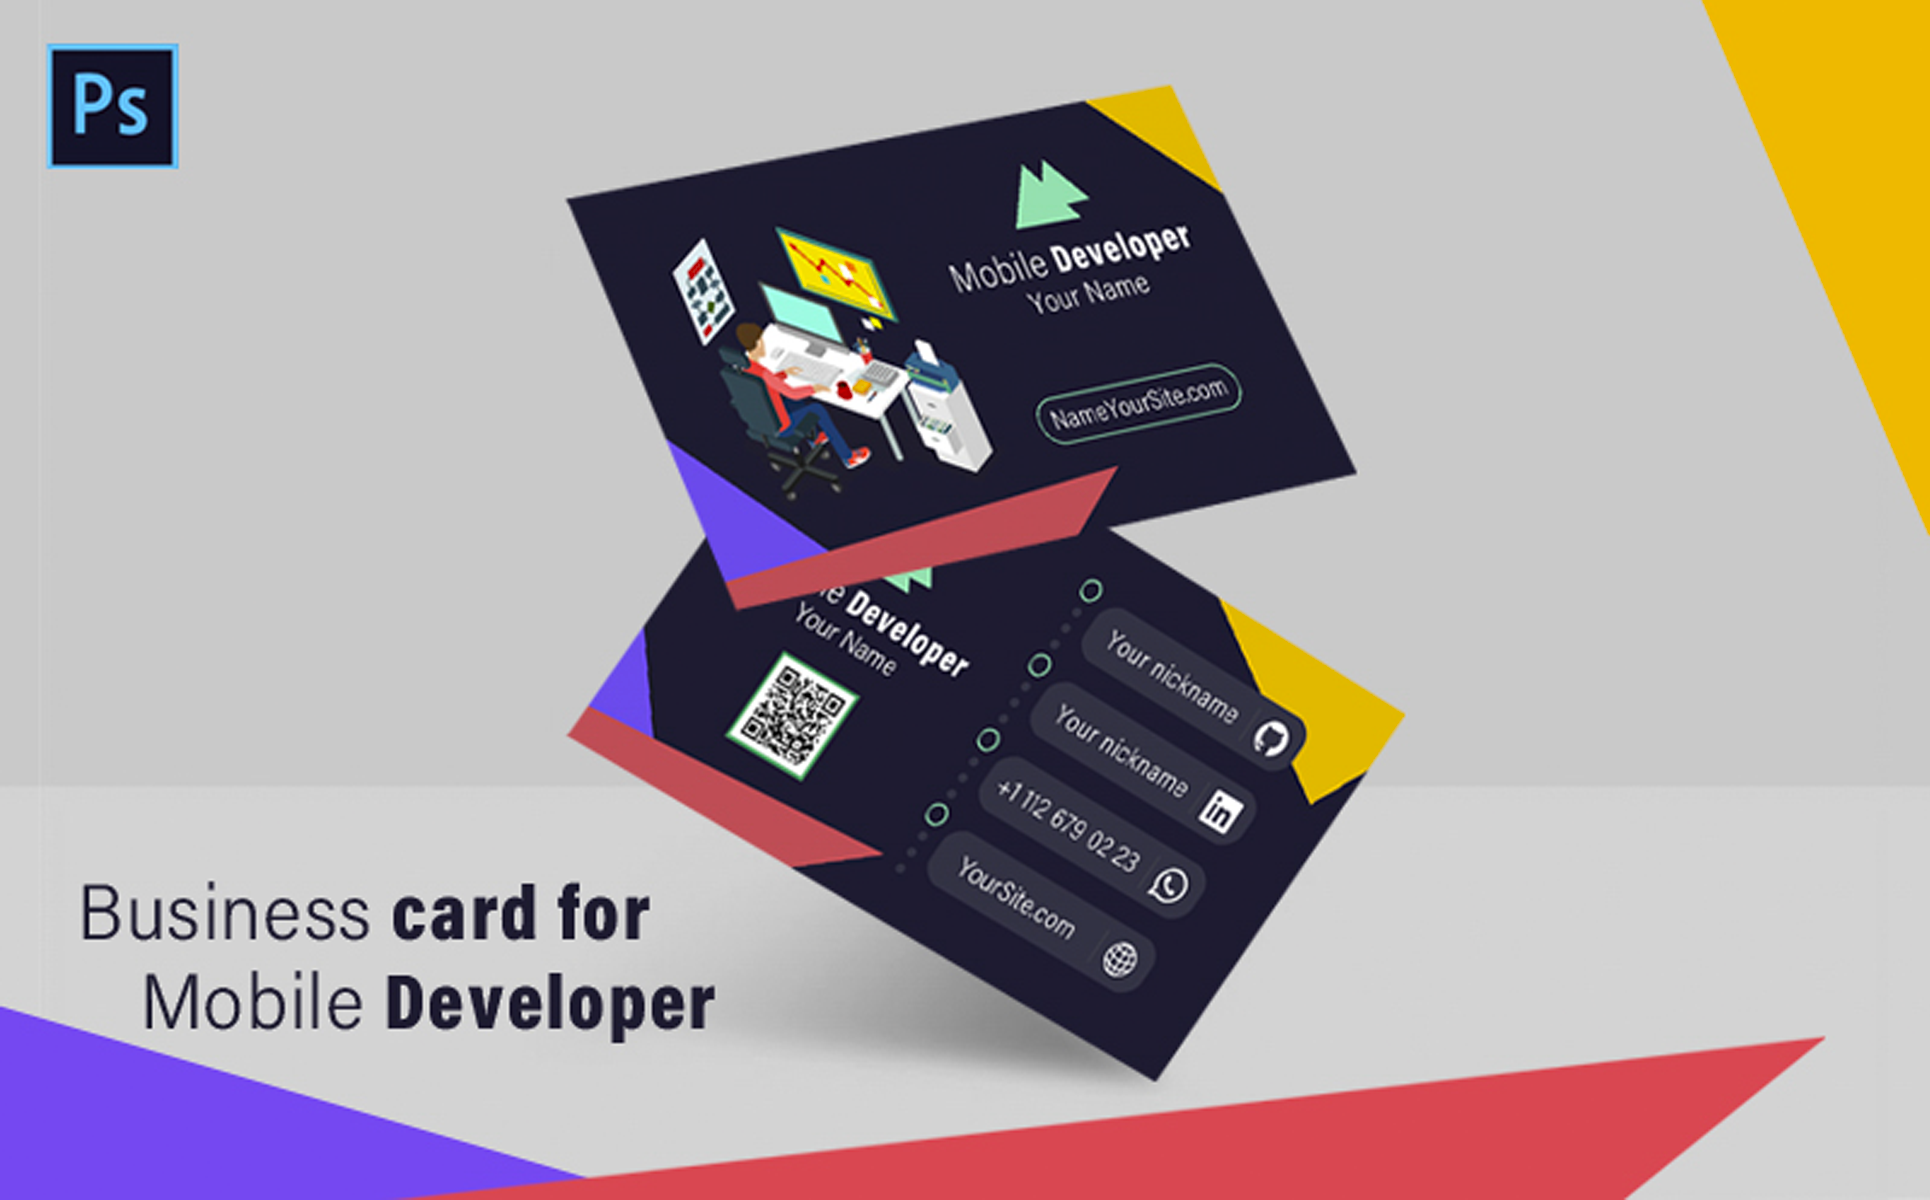 Business Card for Mobile Developer